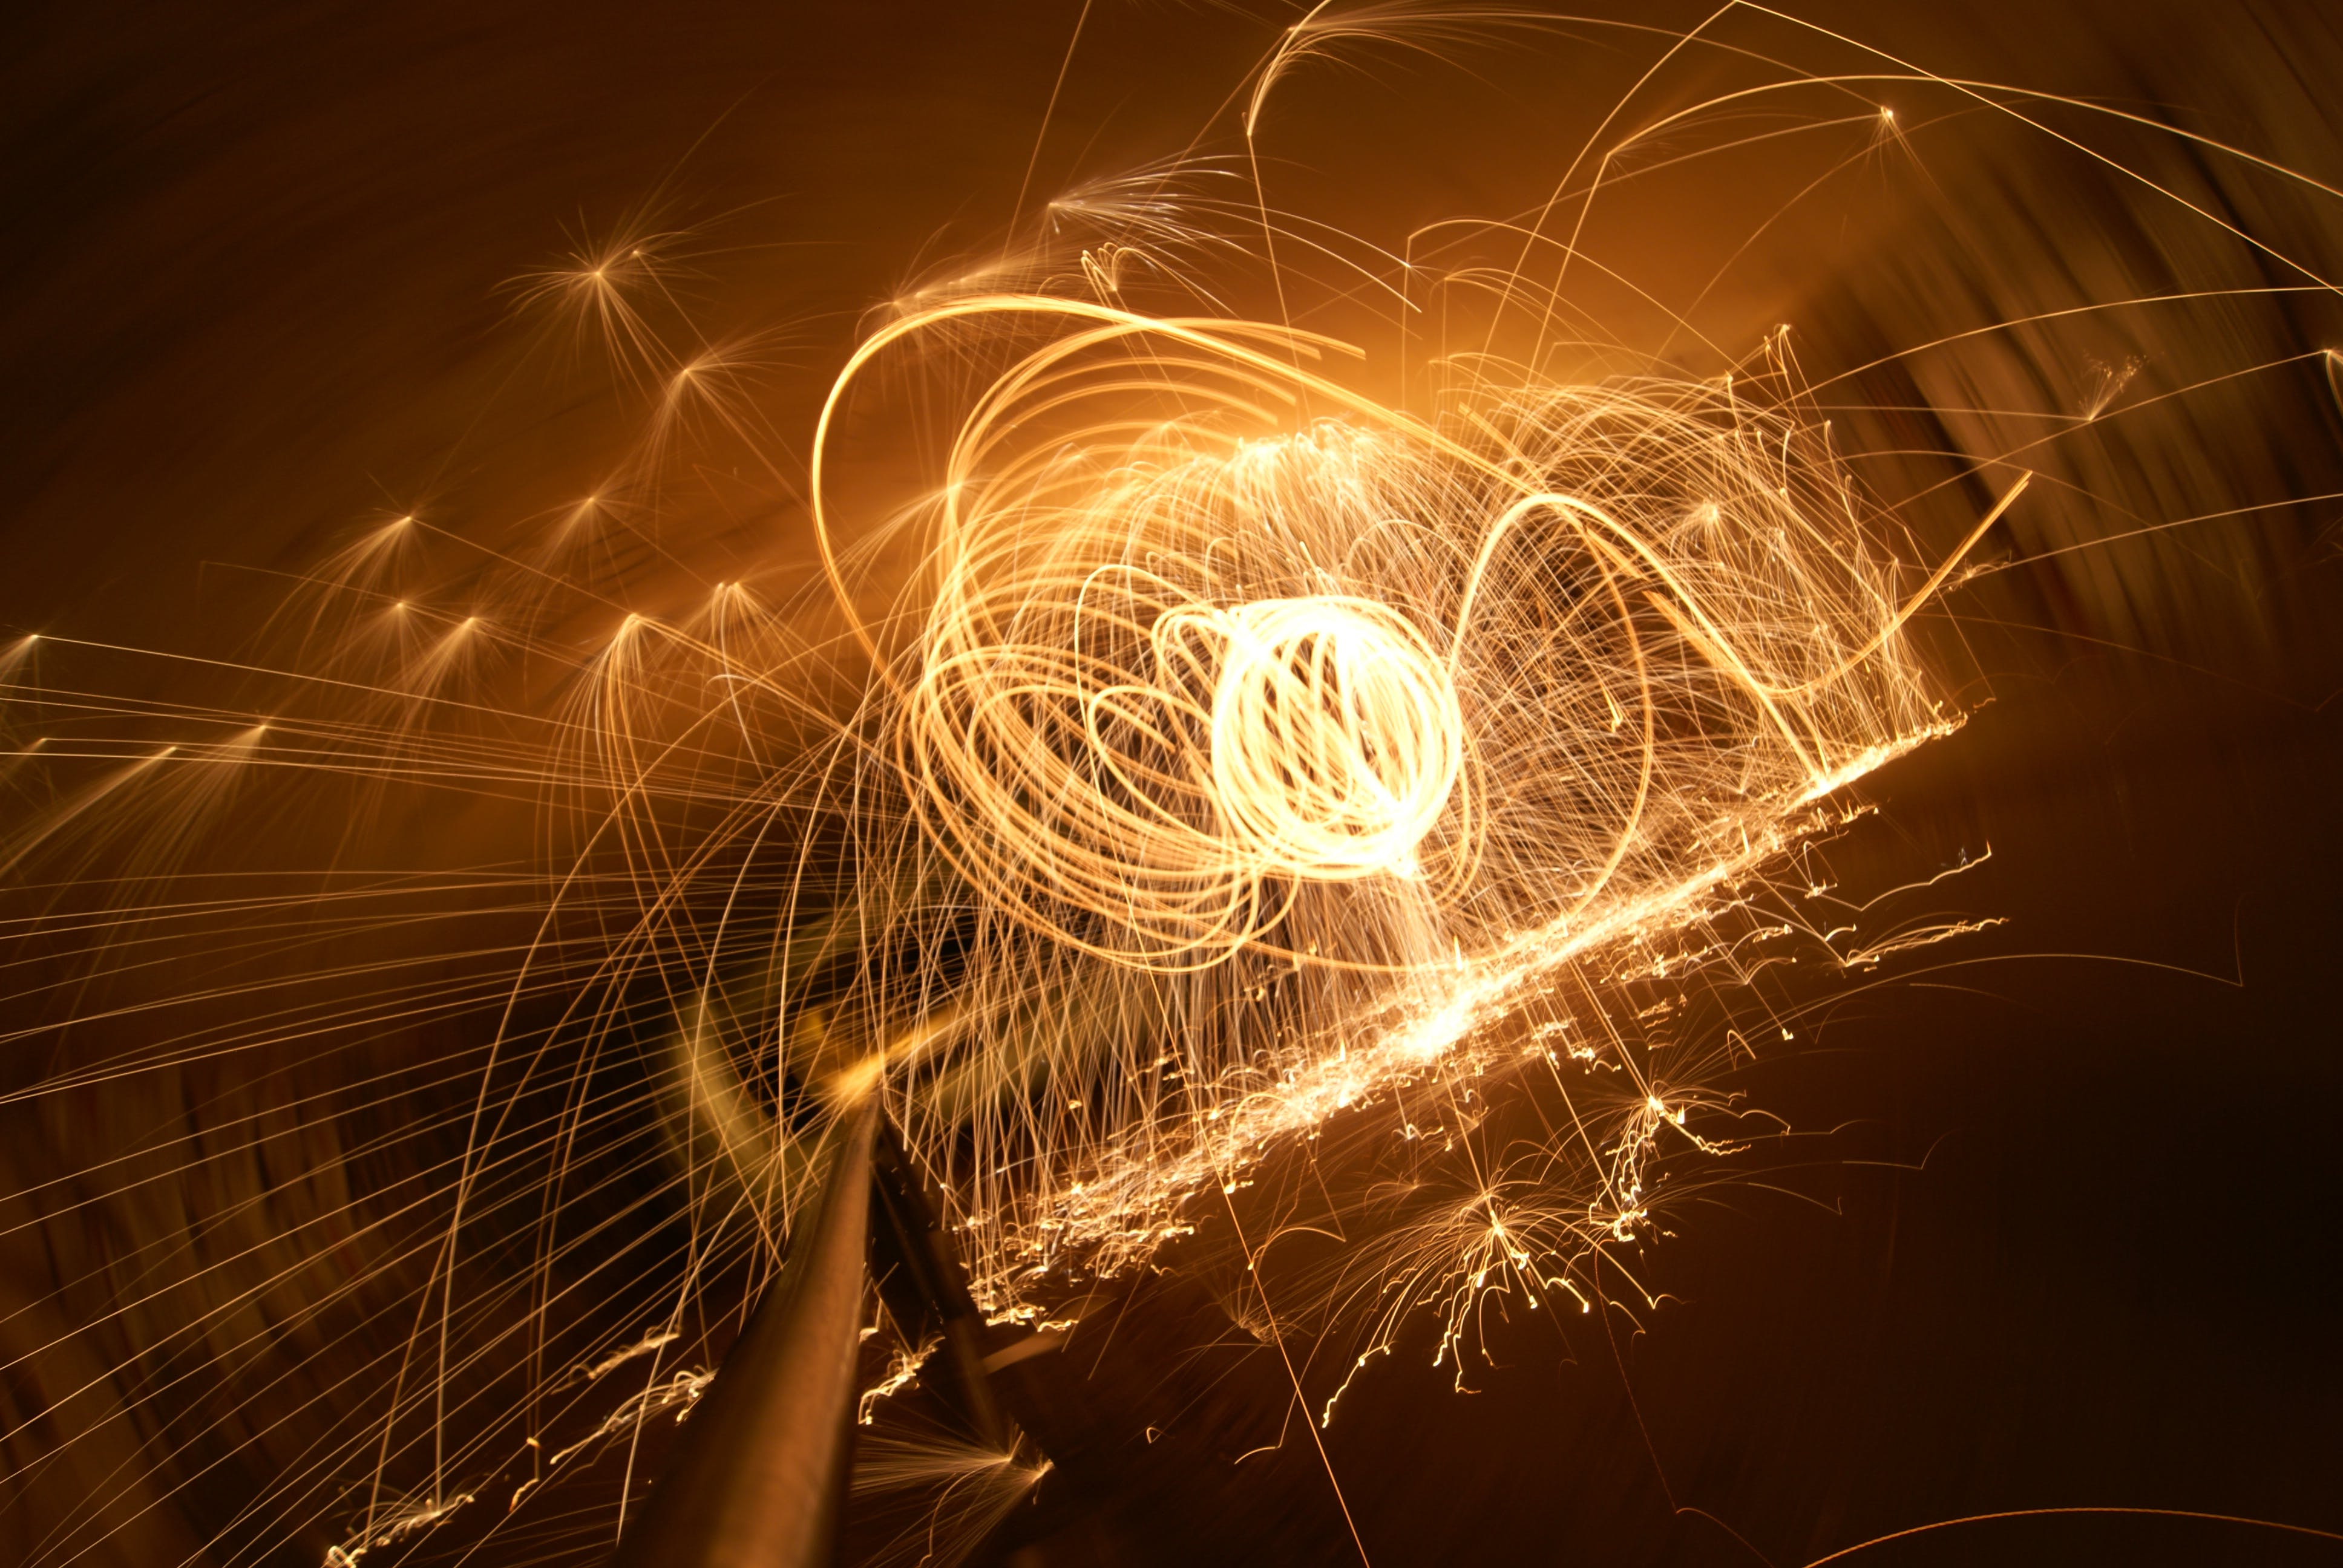 Free stock photo of globe, light painting, sparks